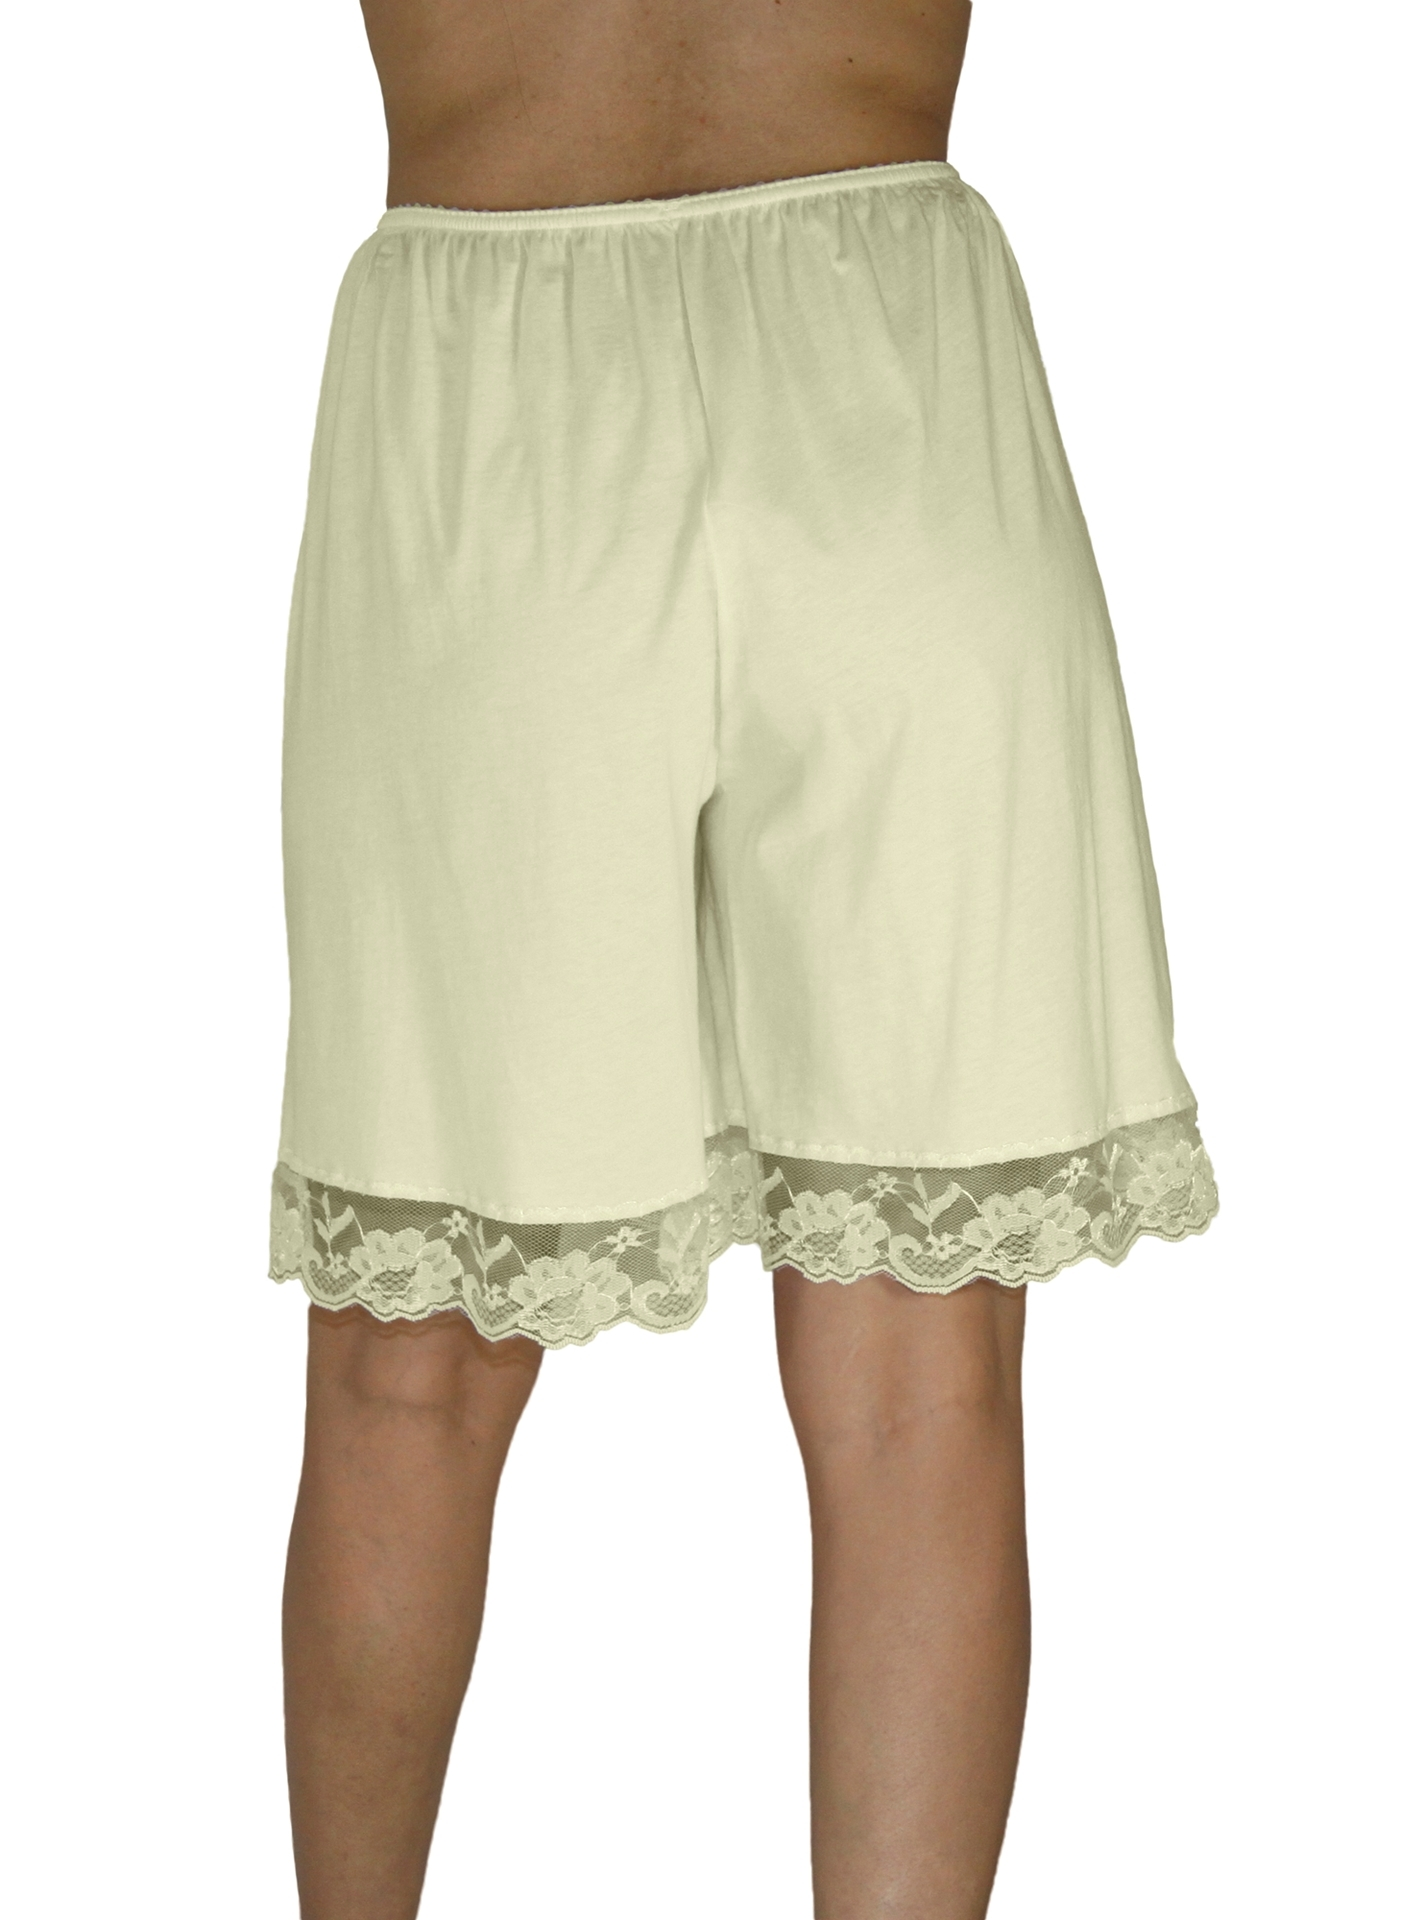 Picture of Pettipants Cotton Knit Culotte Slip Bloomers Split Skirt 9-inch Inseam